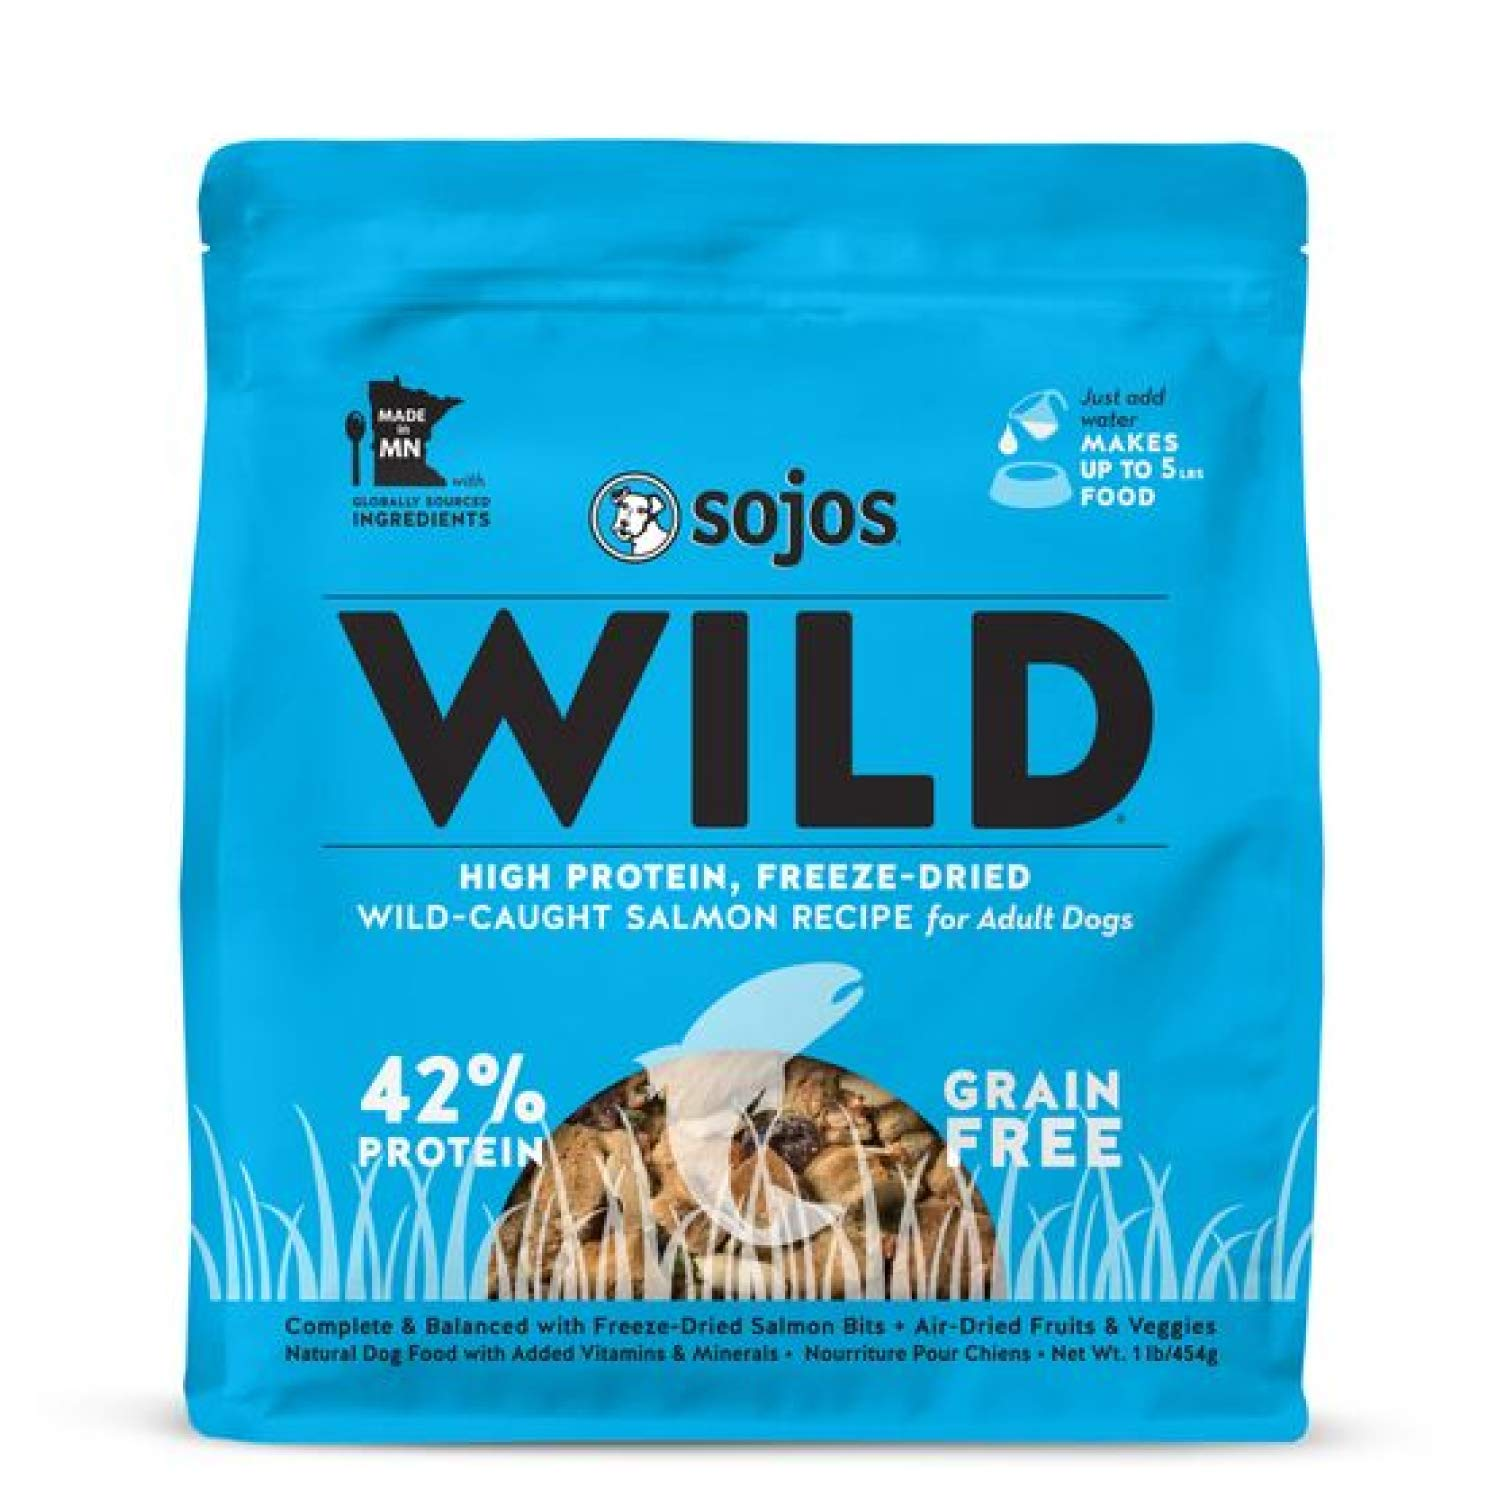 Sojos Wild Natural Freeze-Dried Raw & Dehydrated High Protein Dog Food